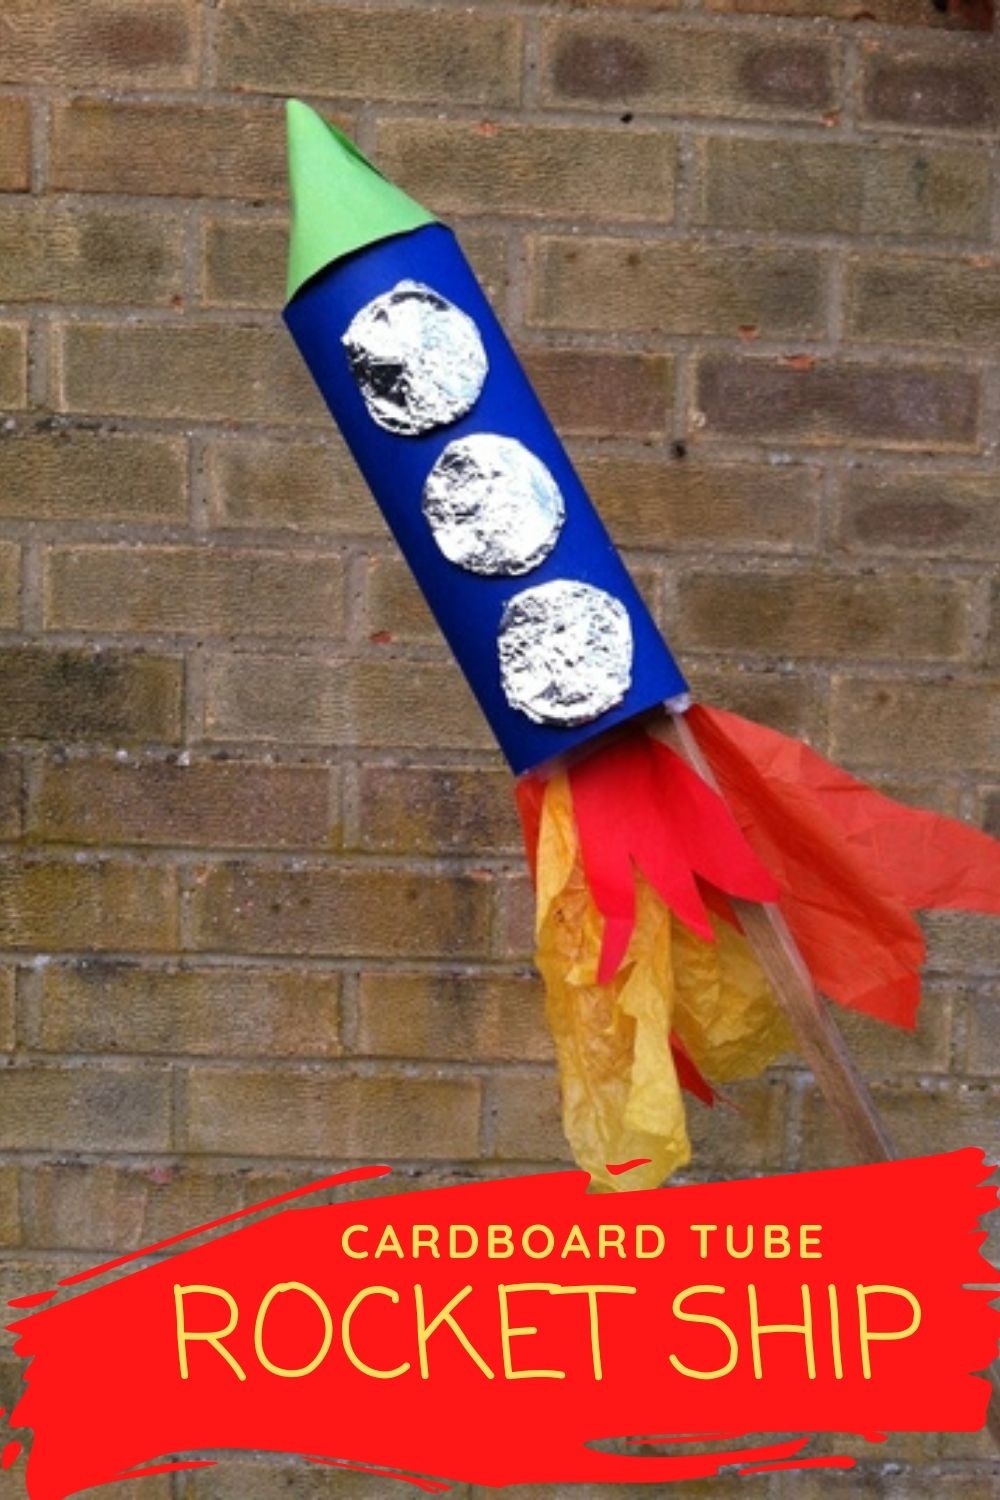 how to make a rocket, cardboard tube rocket, tube rocket ship